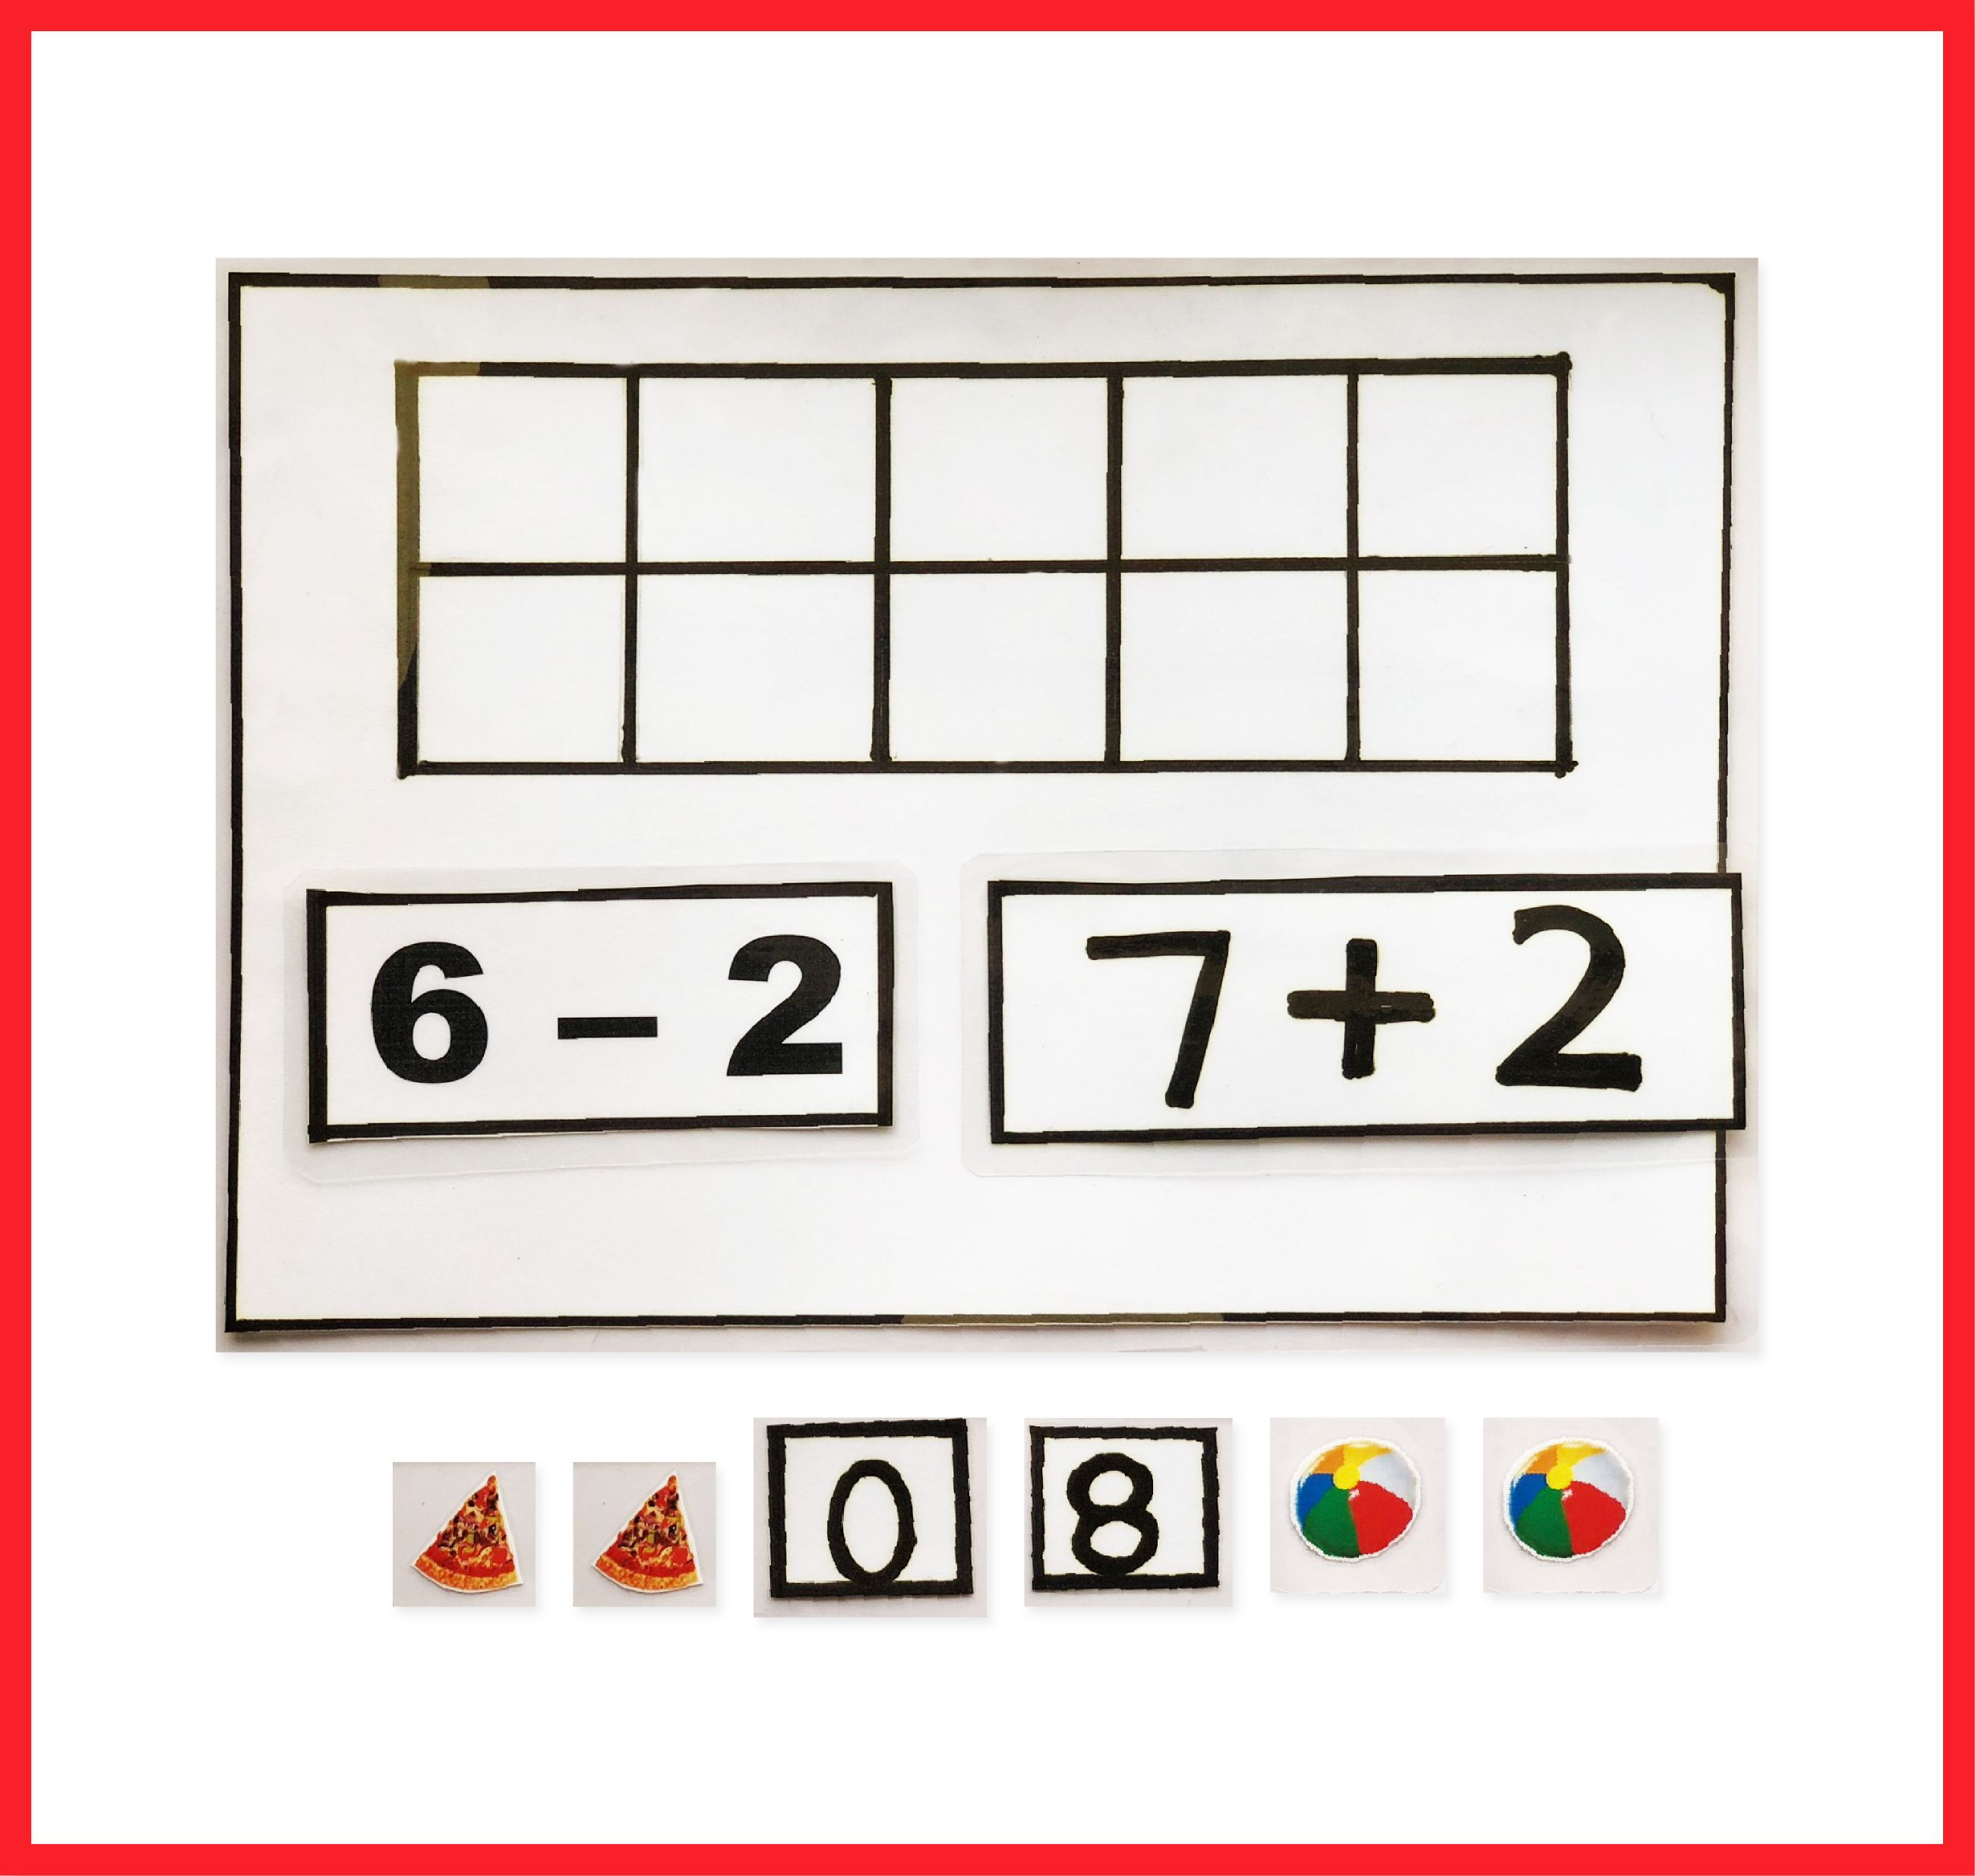 ALPHABETS AND NUMBERS (LEVEL 3)